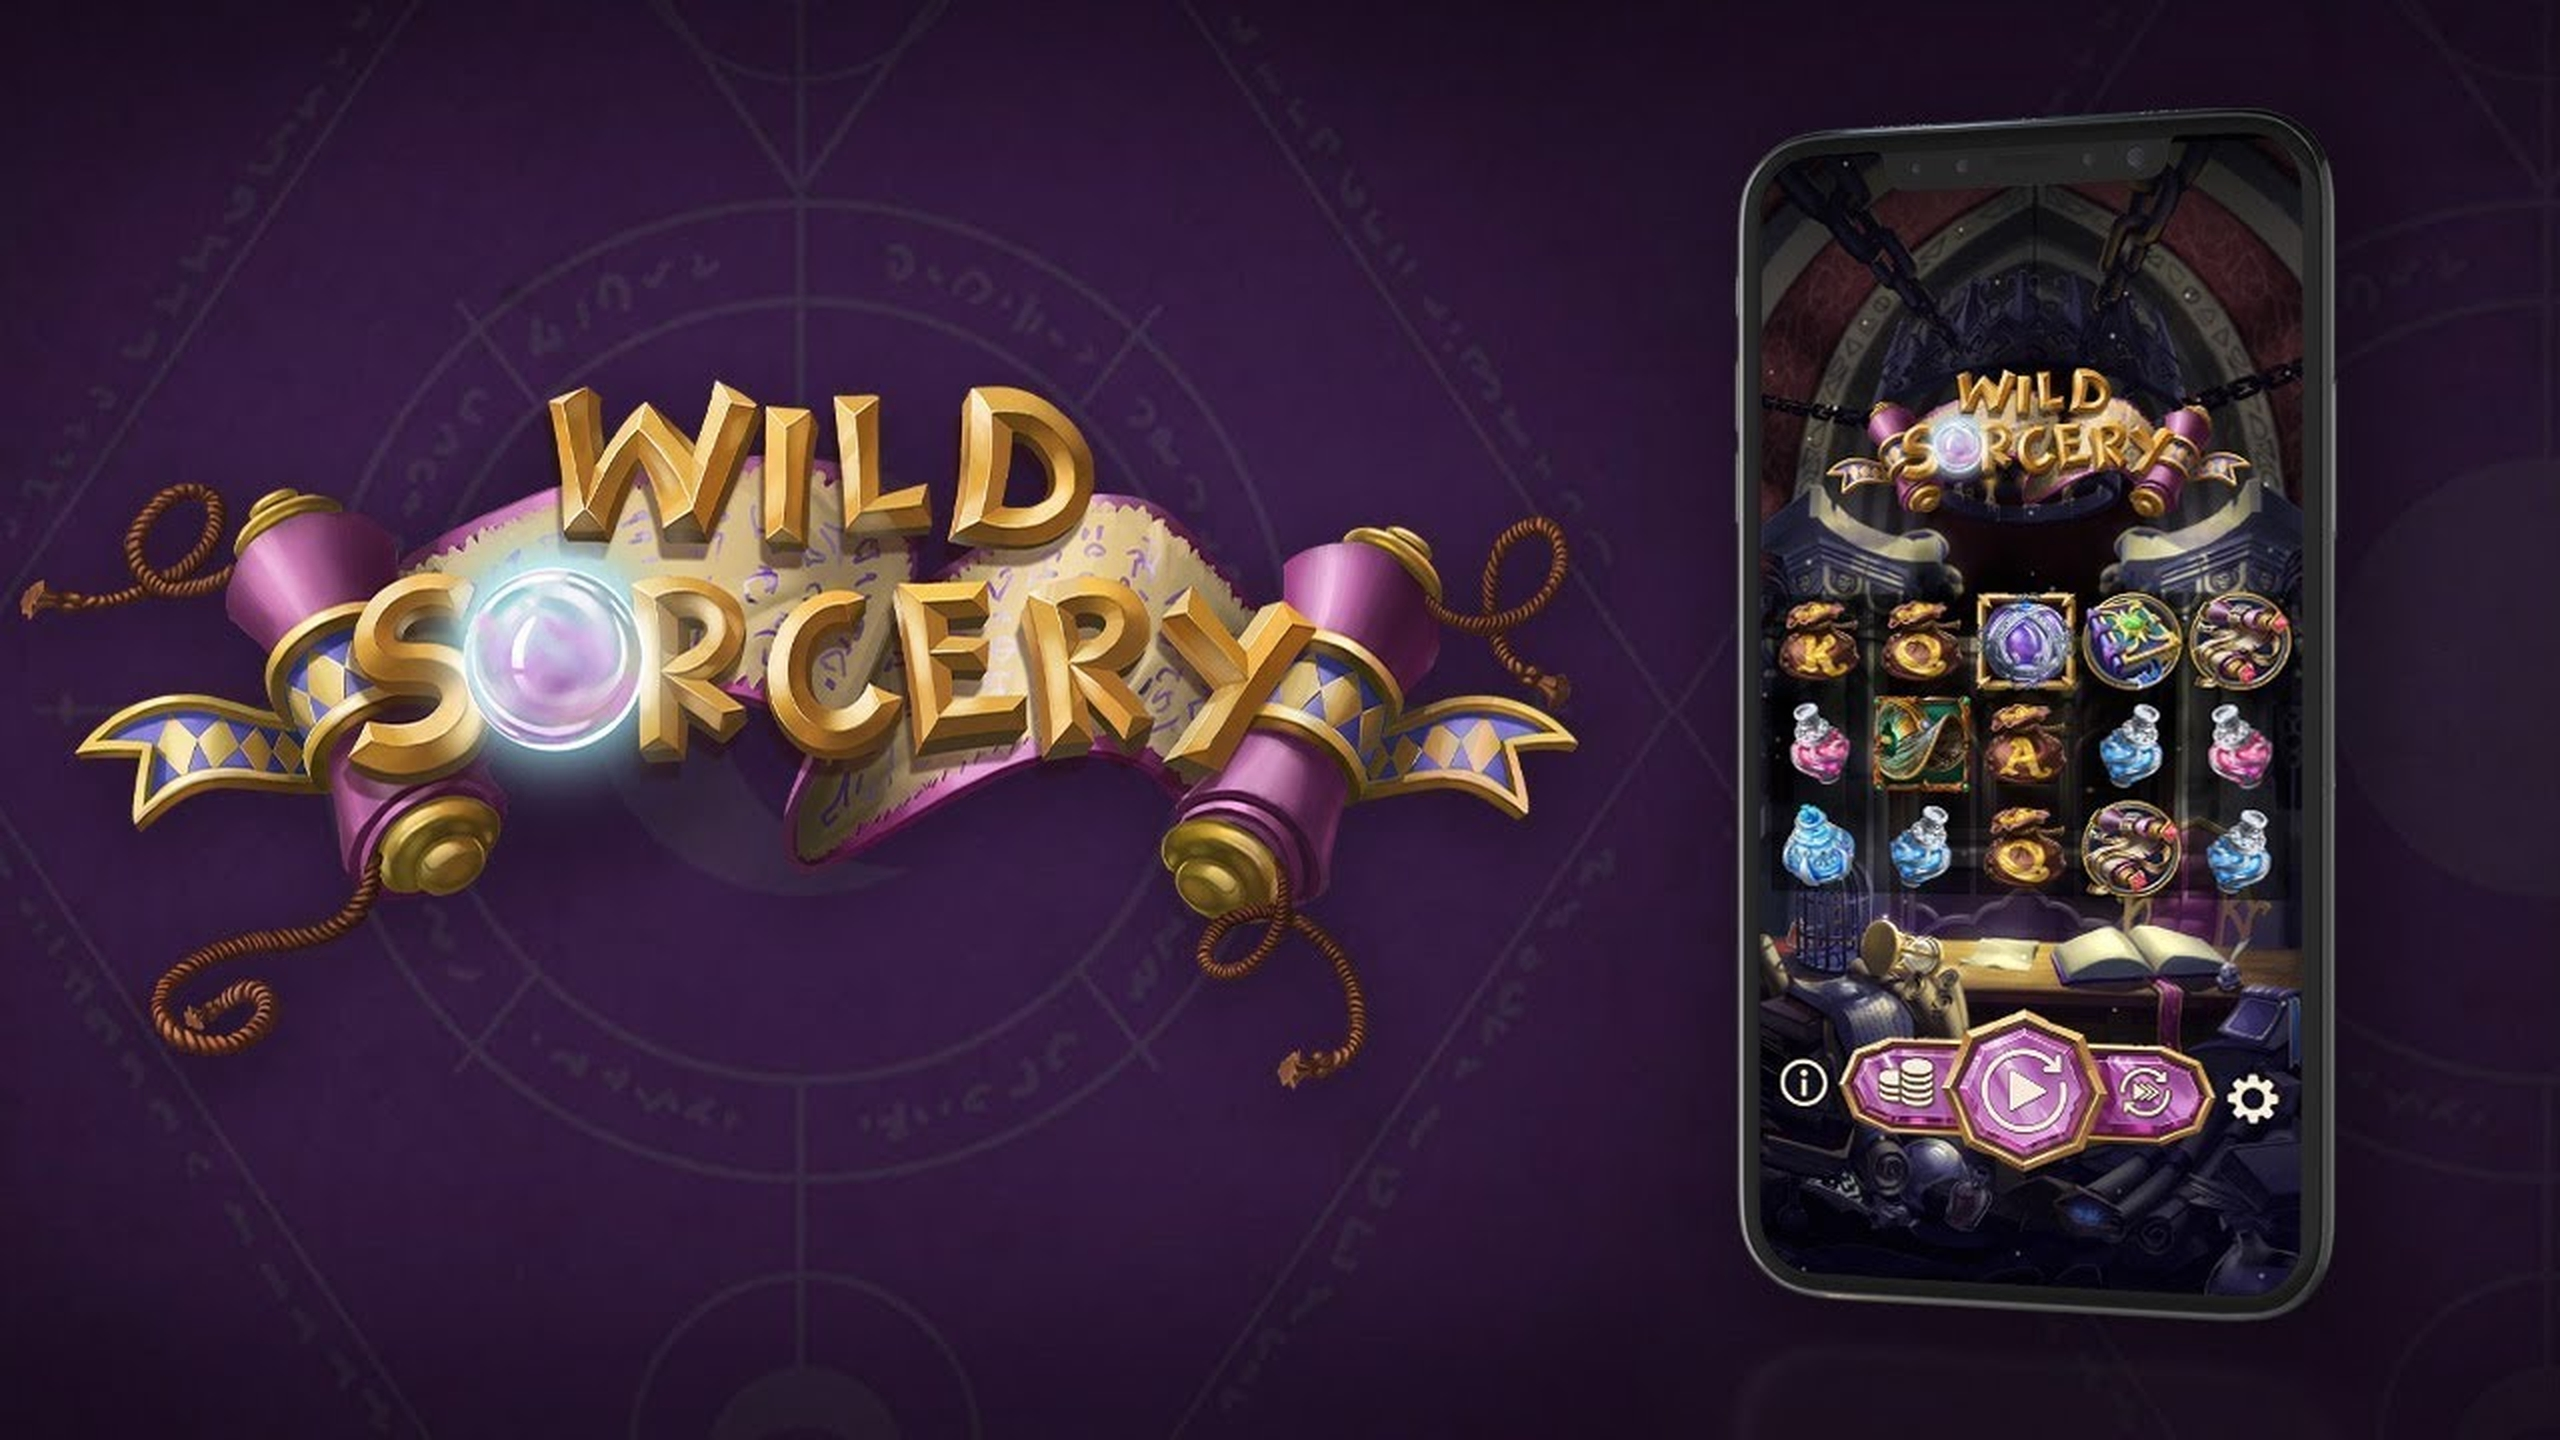 The Wild Sorcery Online Slot Demo Game by OneTouch